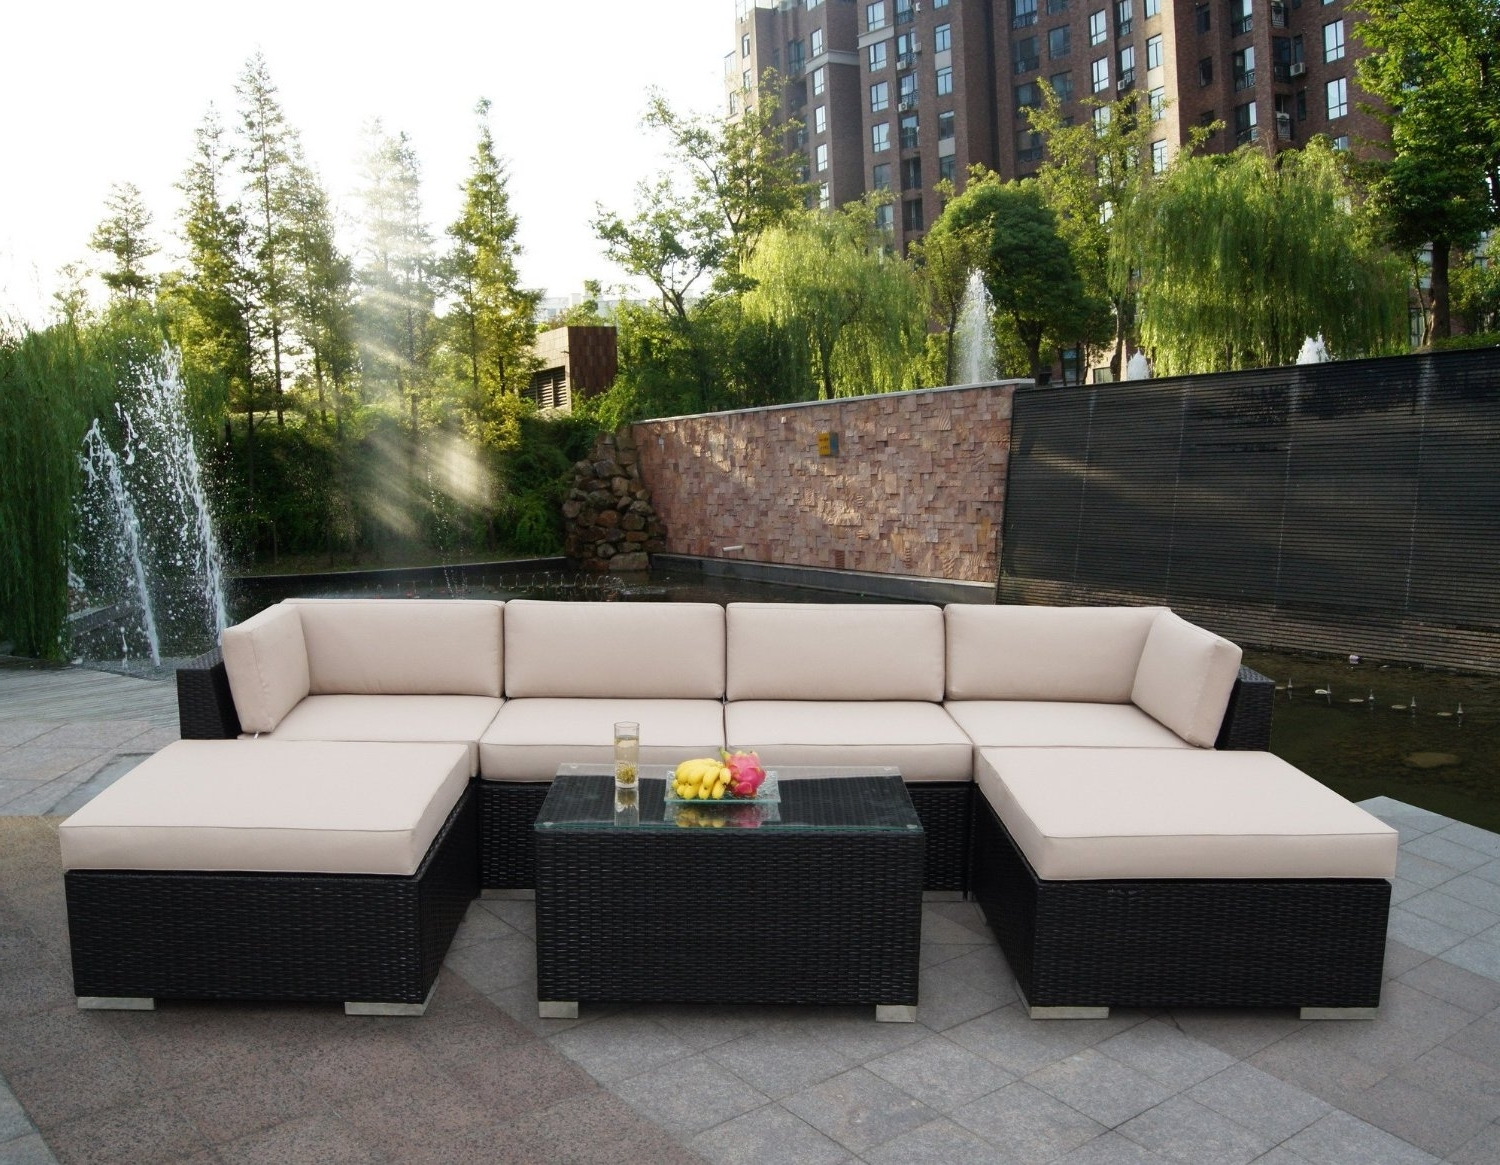 Patio Sofas Intended For Preferred Enjoy Having Outdoor Patio Sets At Your Lawn – Bellissimainteriors (View 10 of 20)